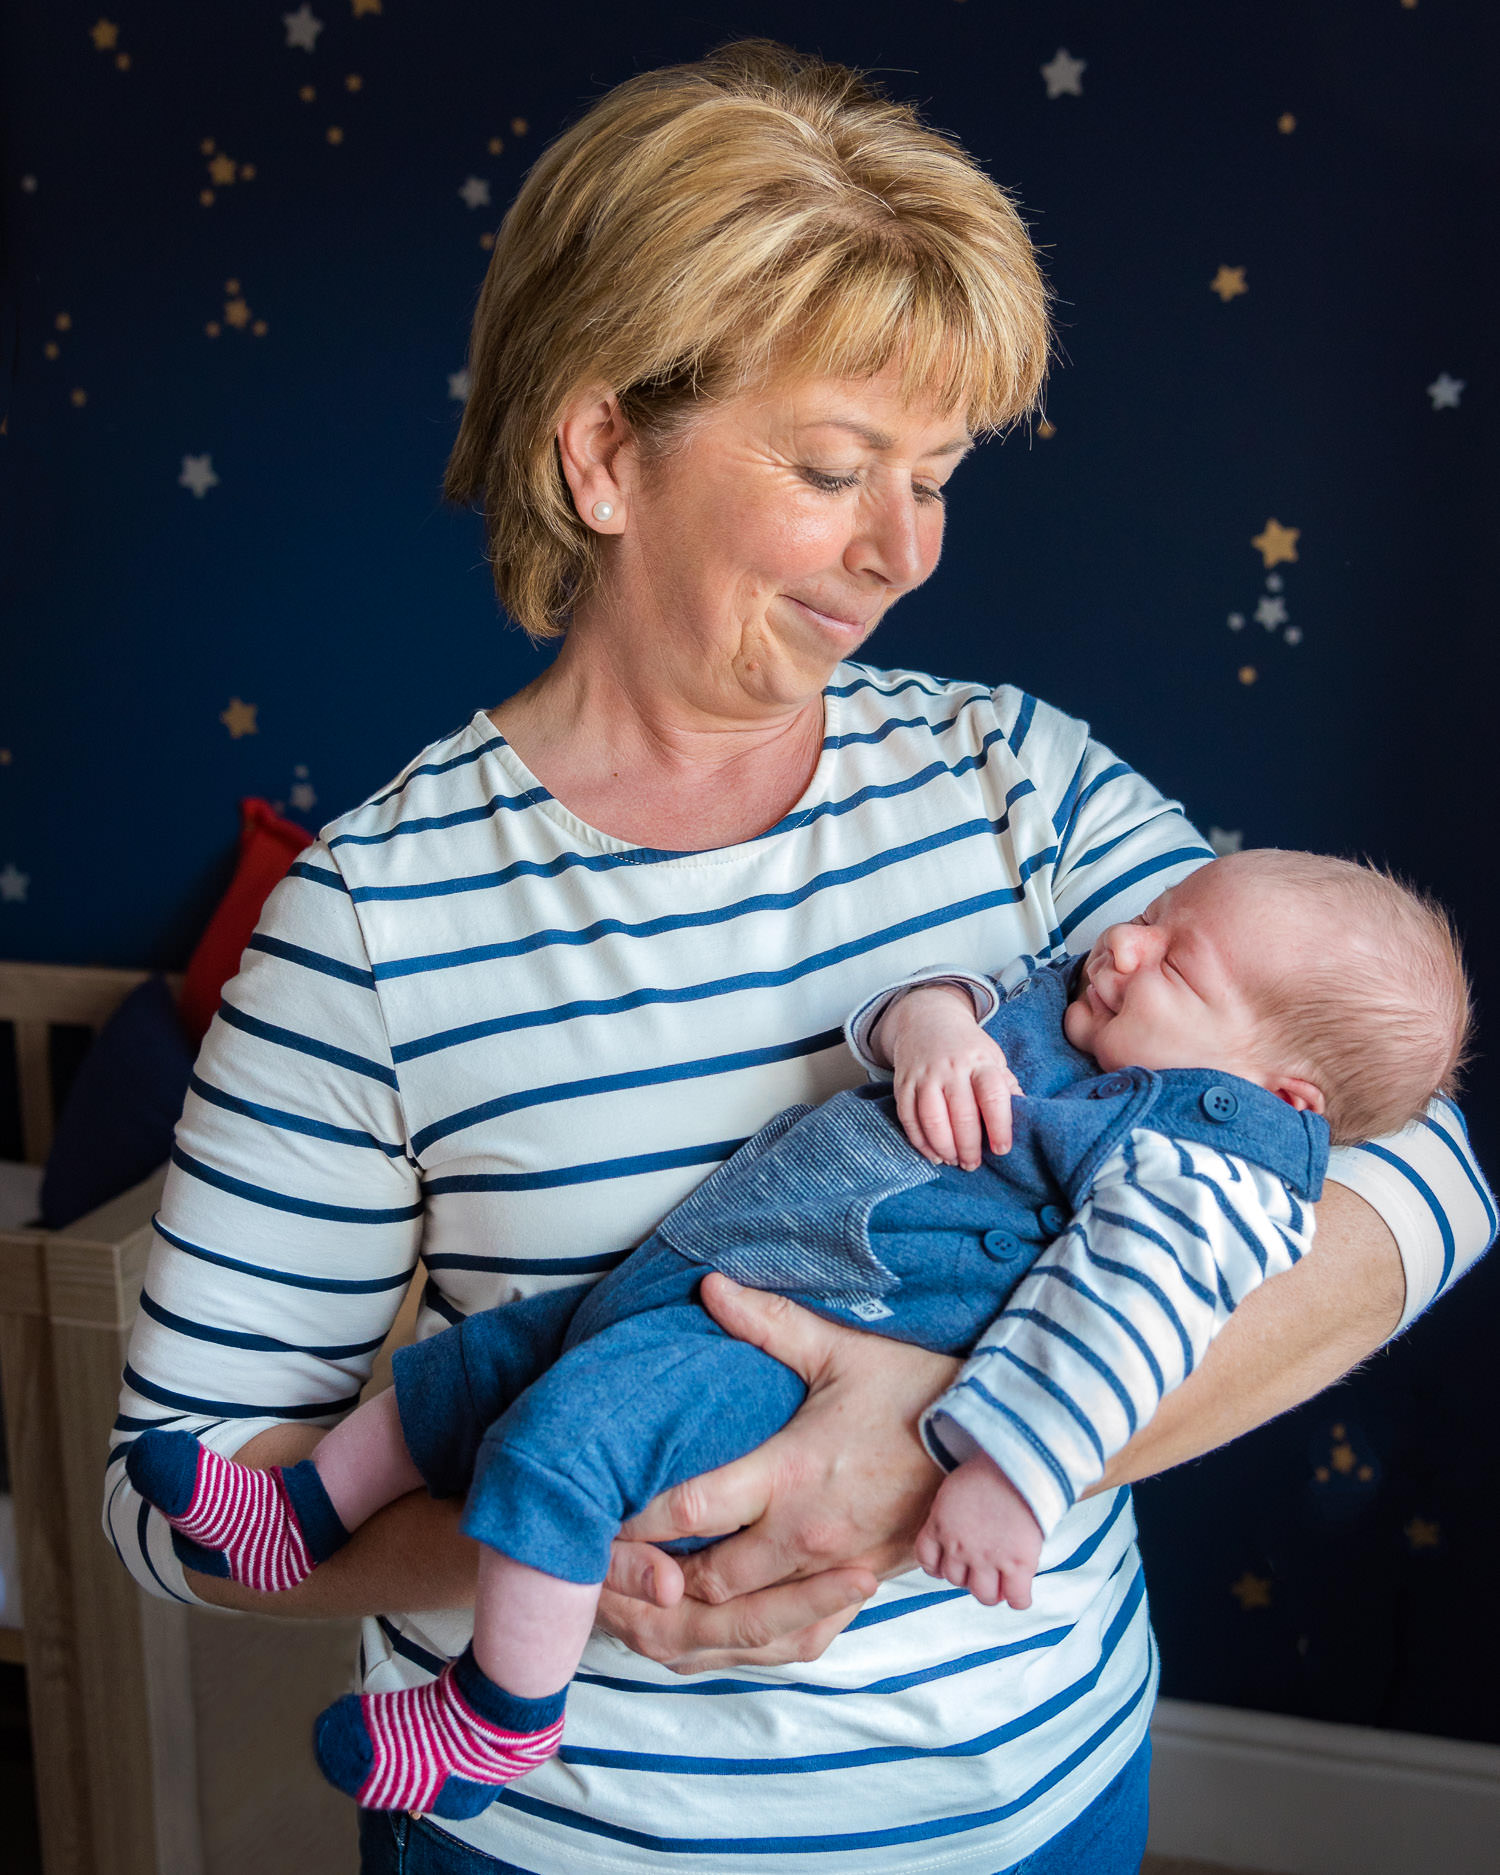 Grandma cuddling baby grandson during maternity shoot